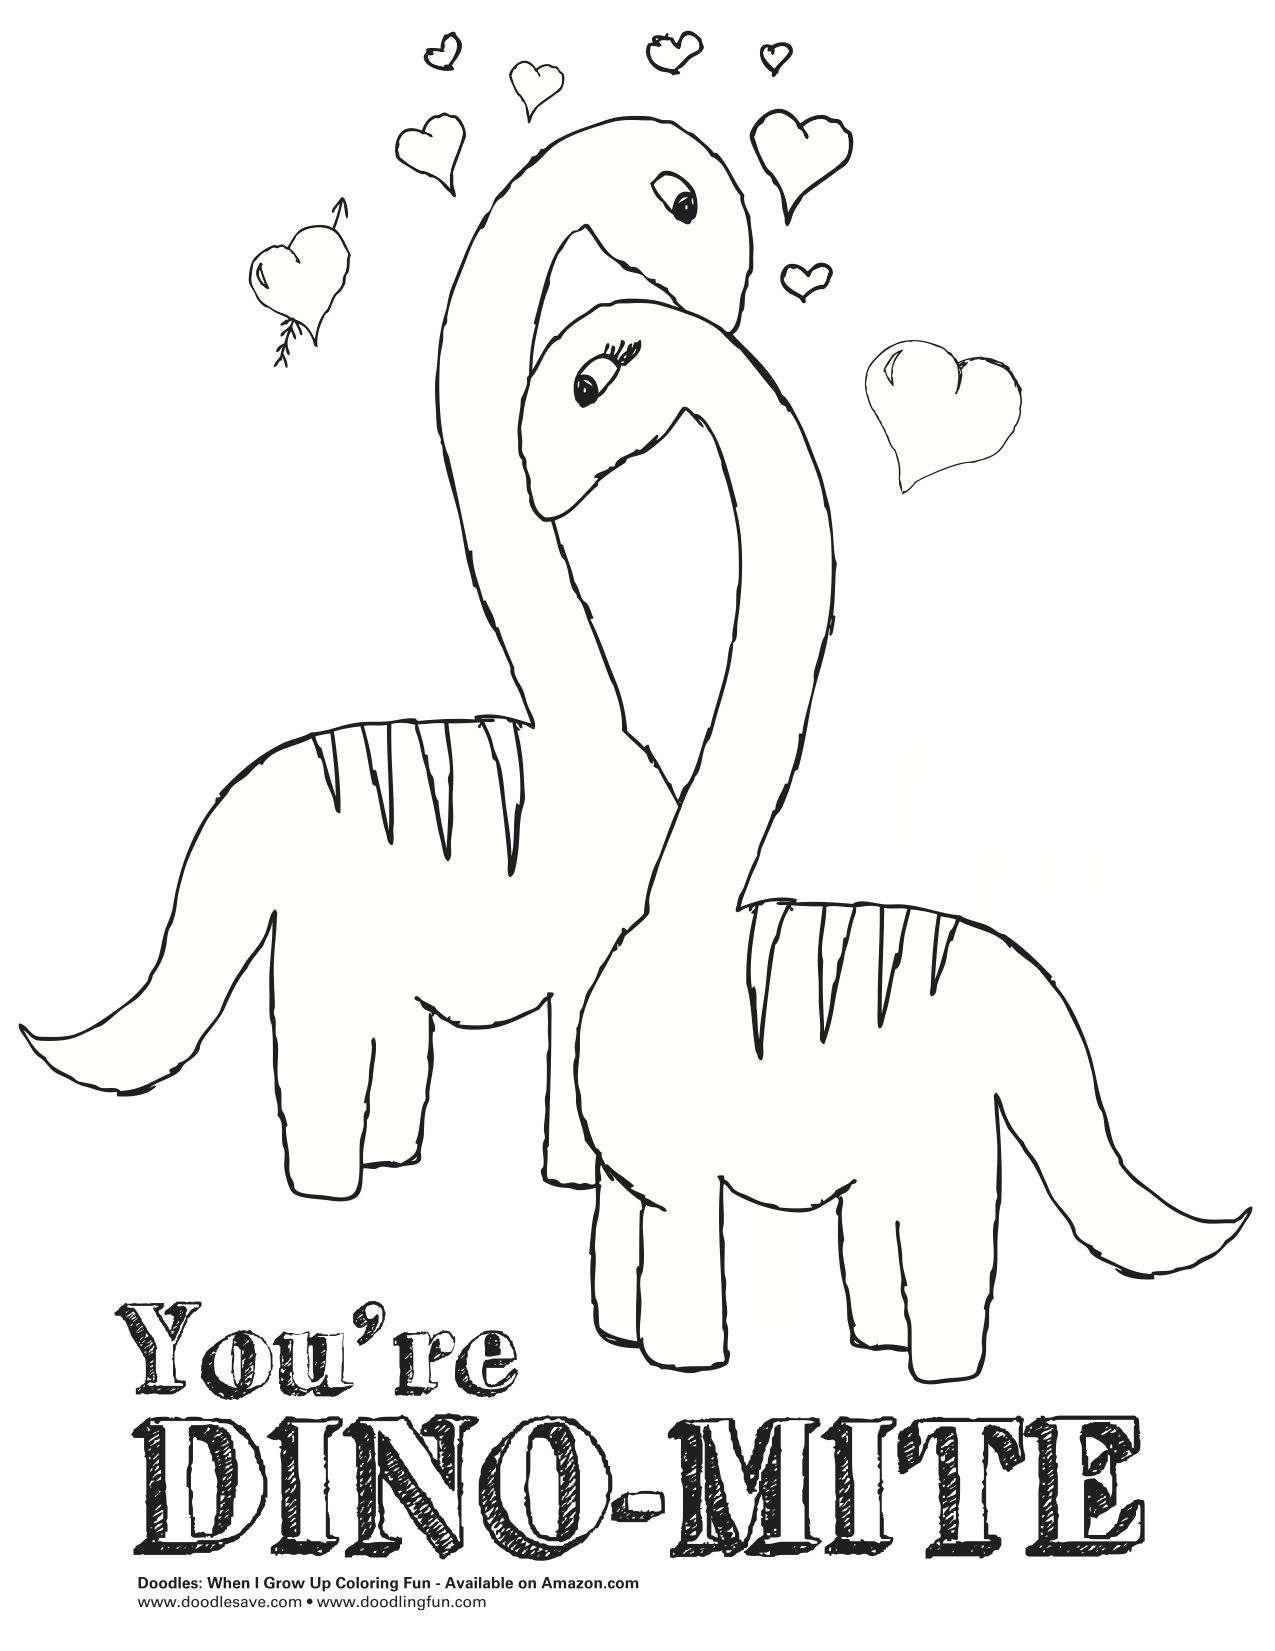 dinosaurus romance valentine animal kids coloring pages - Valentine Coloring Pages For Kids